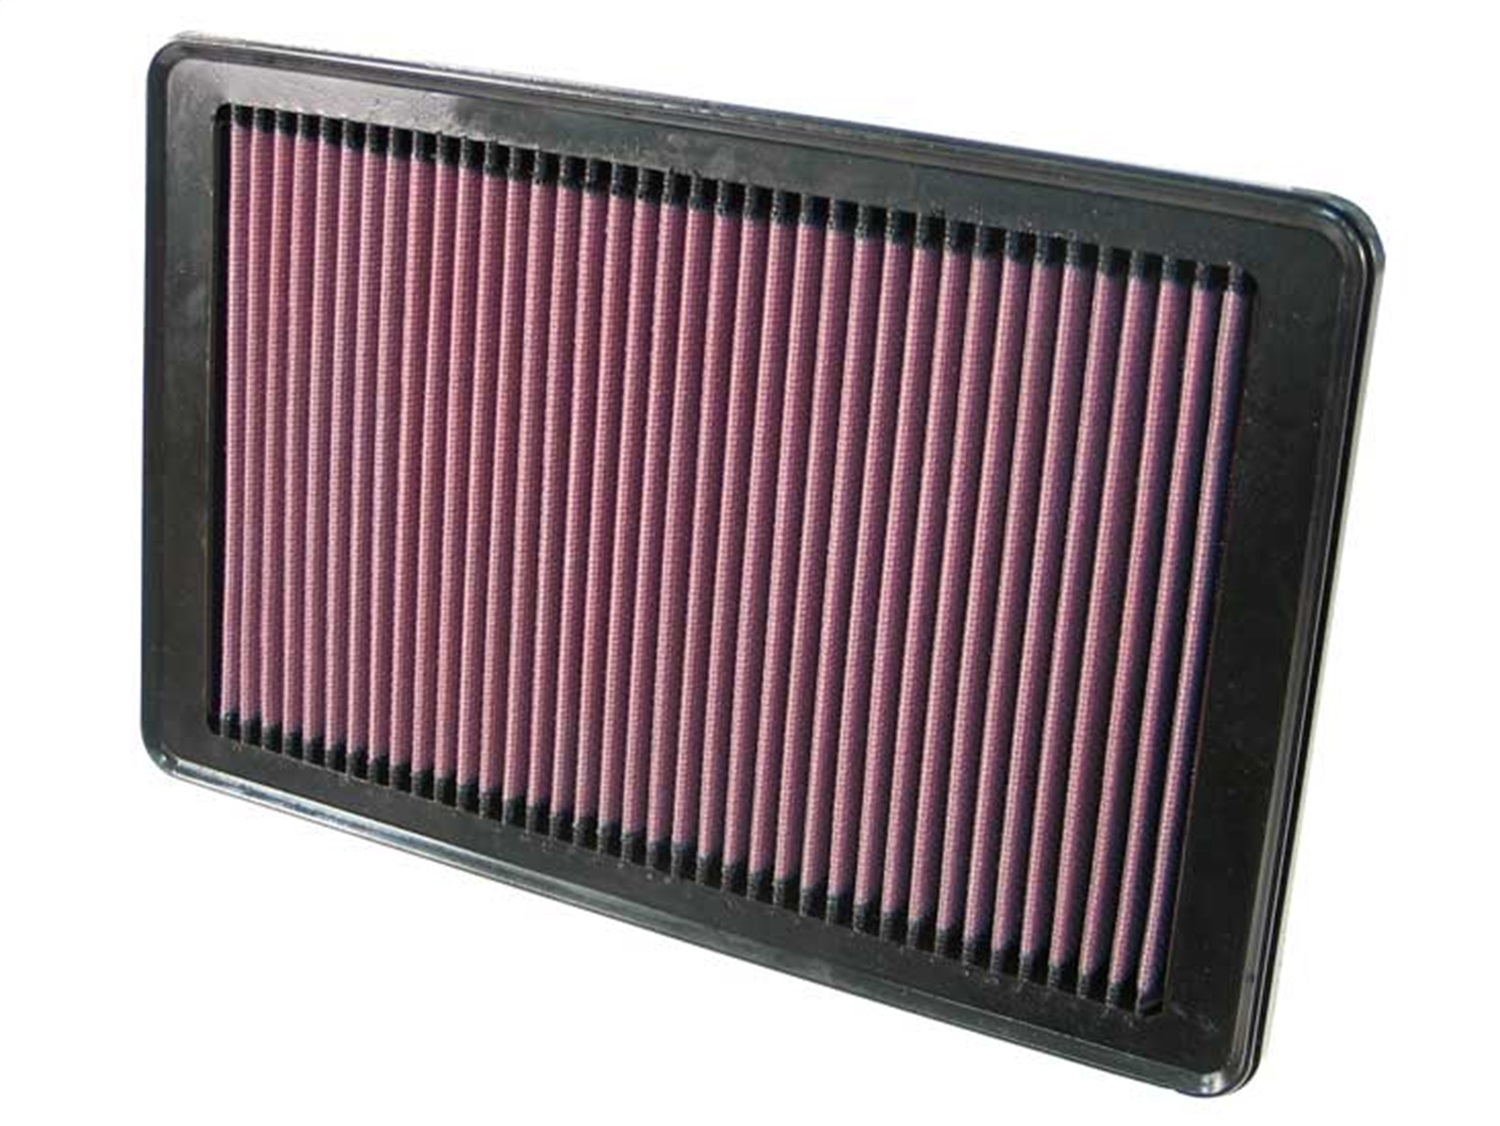 K&N Filters 33-2358 Air Filter Fits 06-07 Ion 33-2358